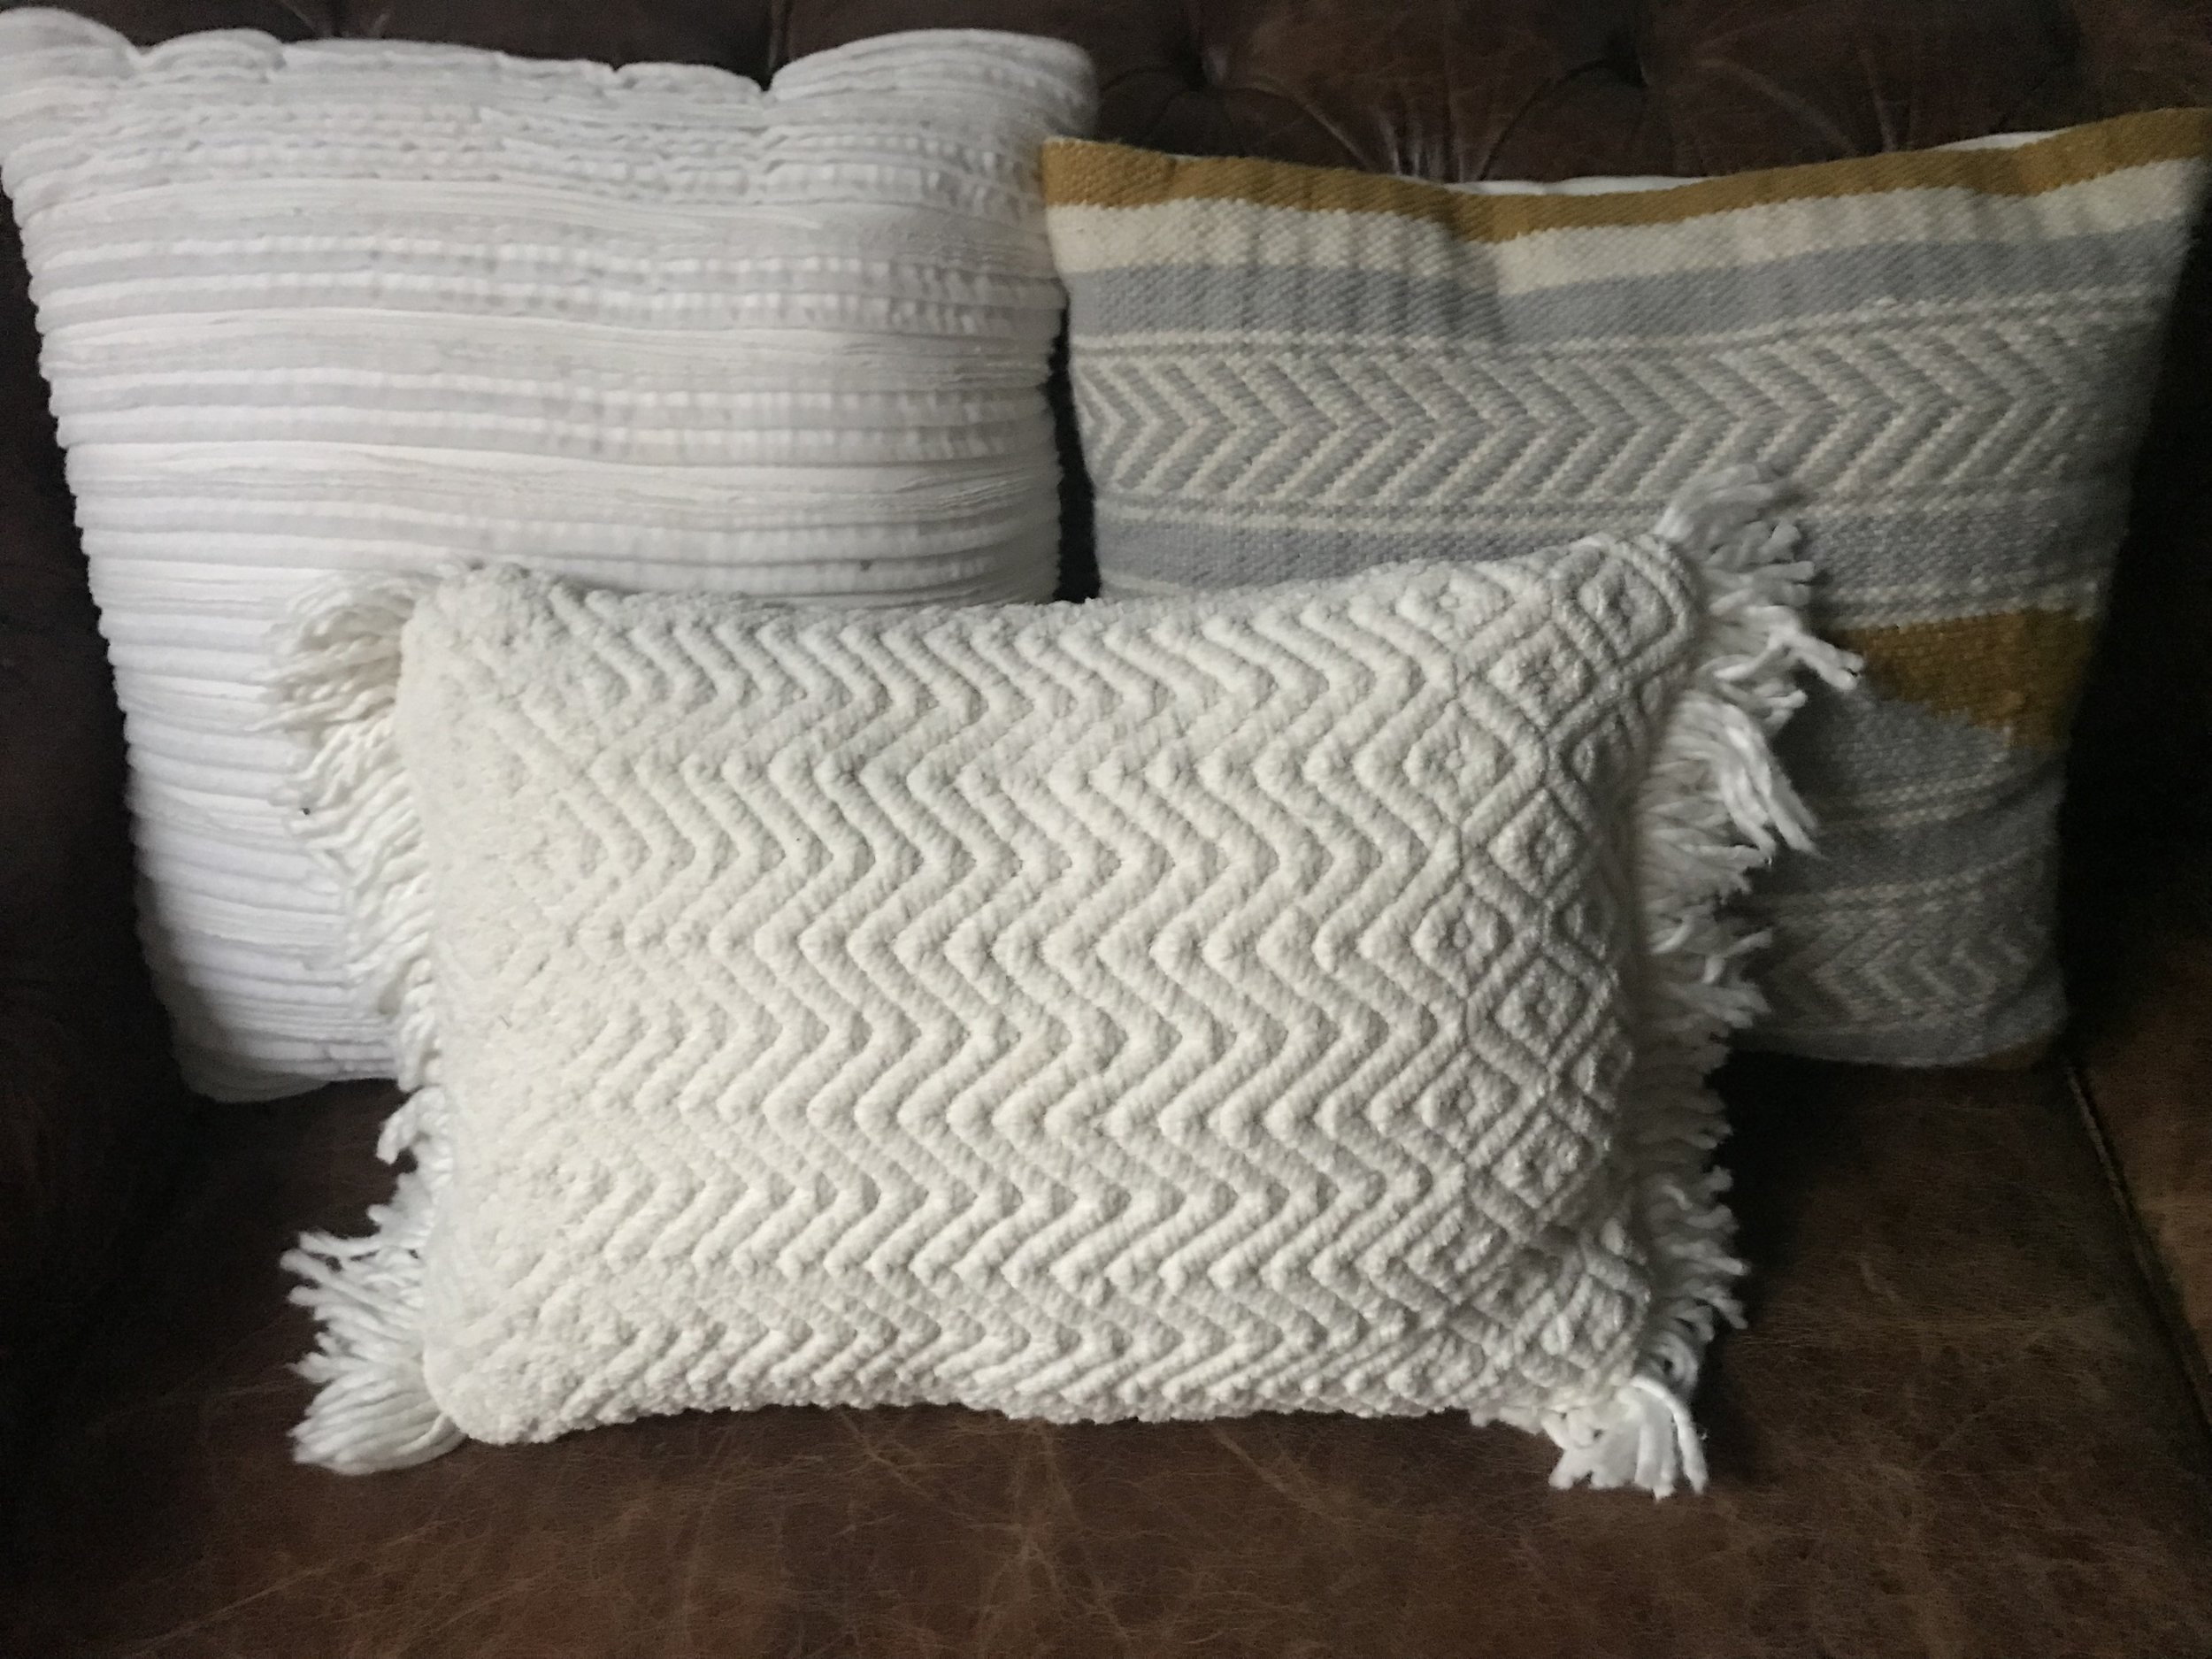 Pillows1.jpg